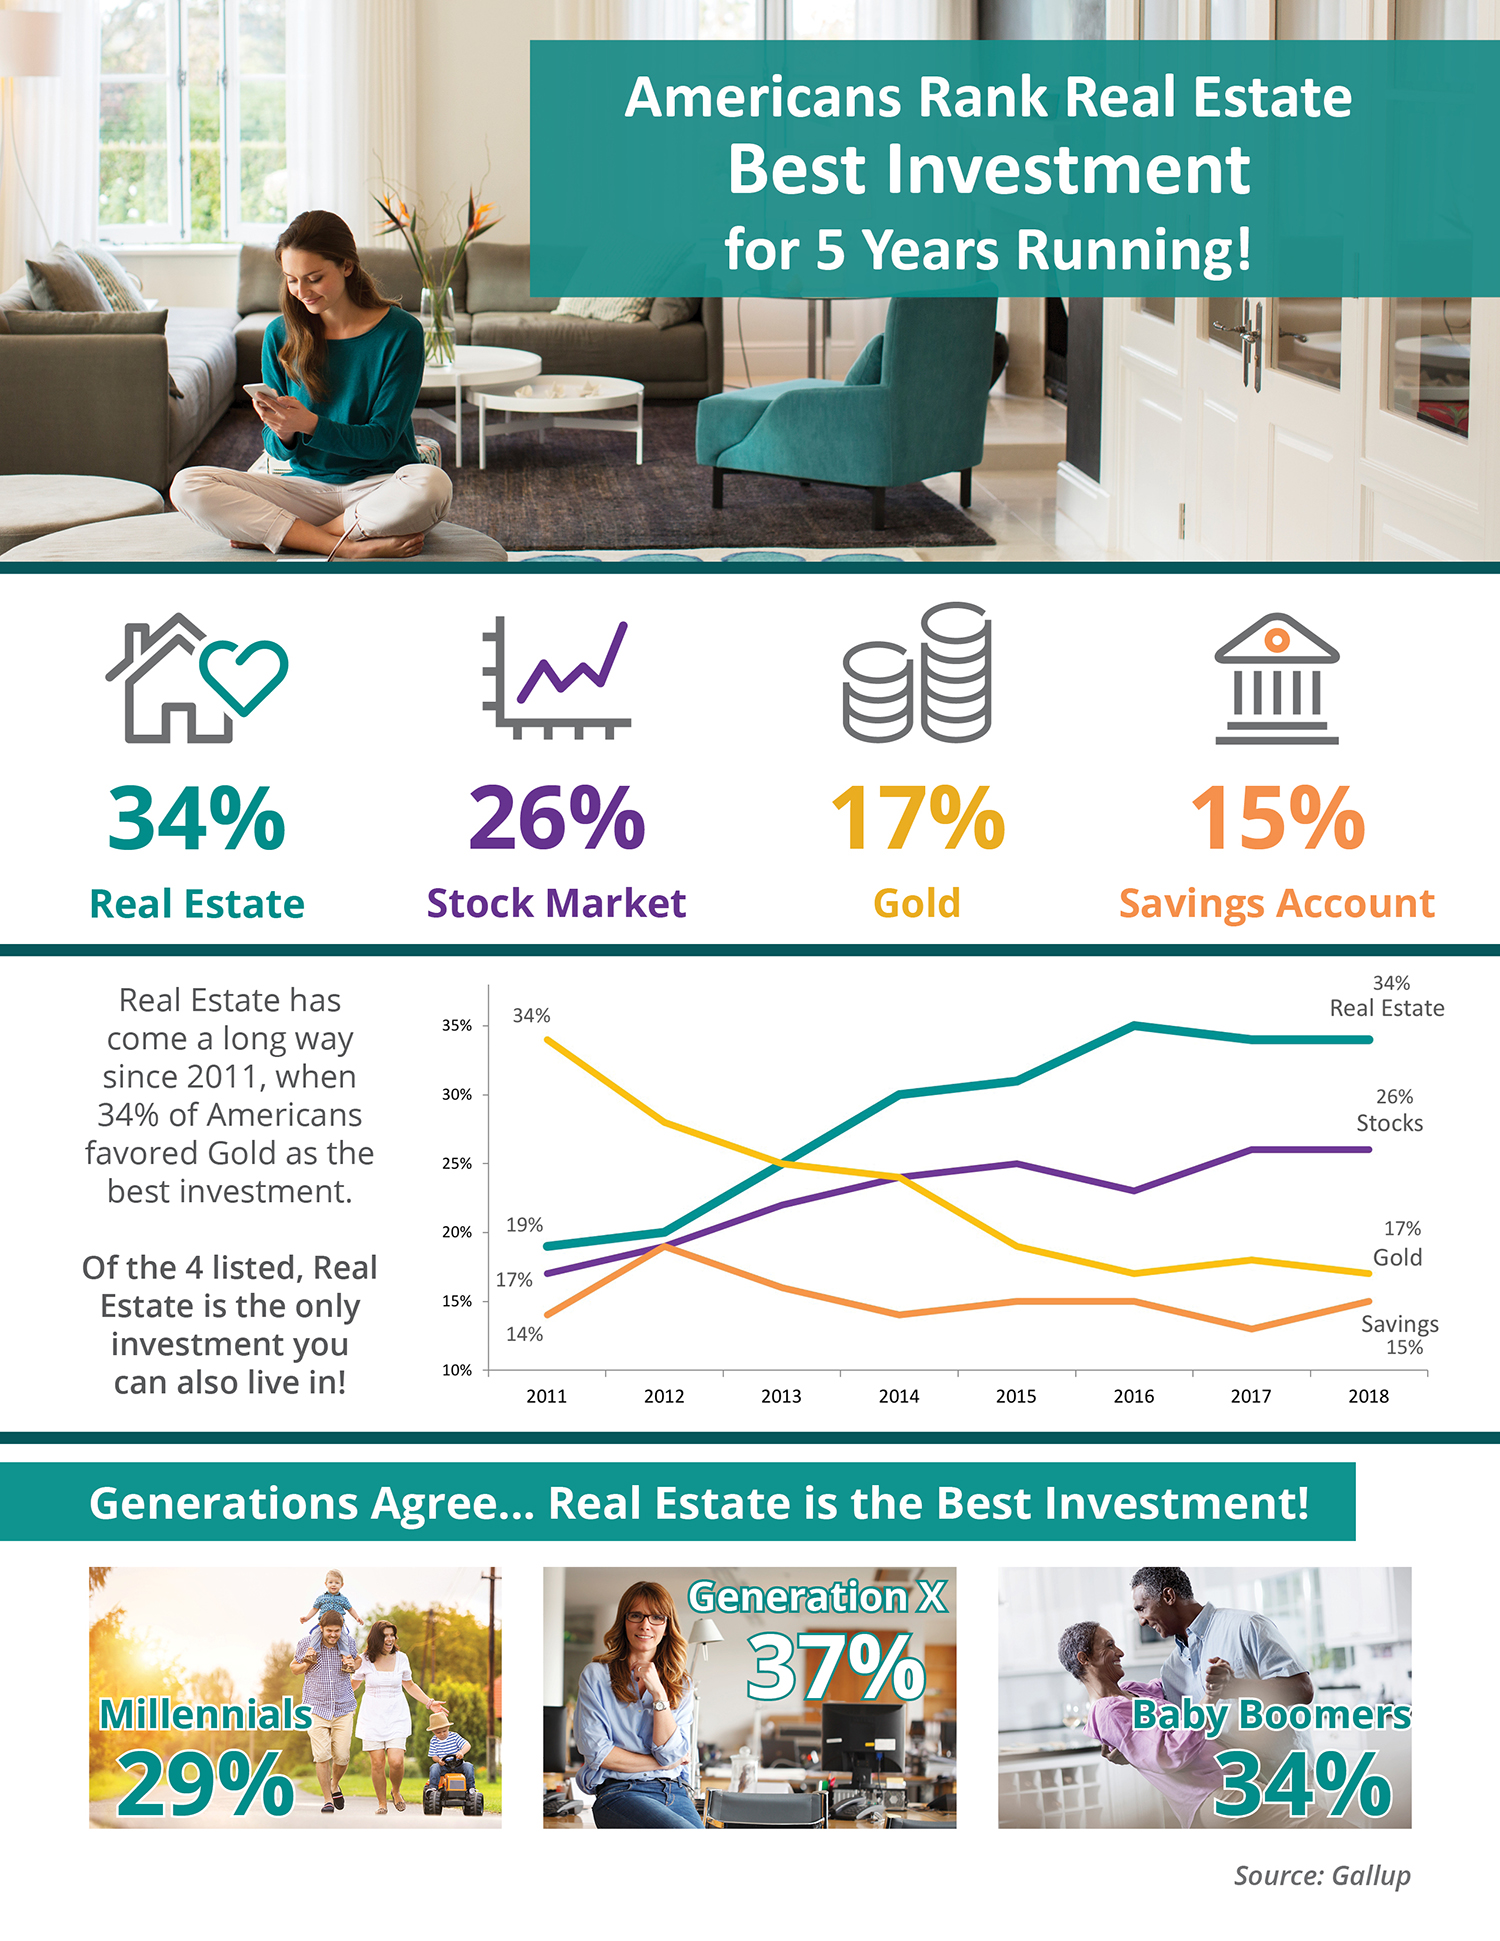 Americans Rank Real Estate Best Investment for 5 Years Running! [INFOGRAPHIC] | Simplifying The Market